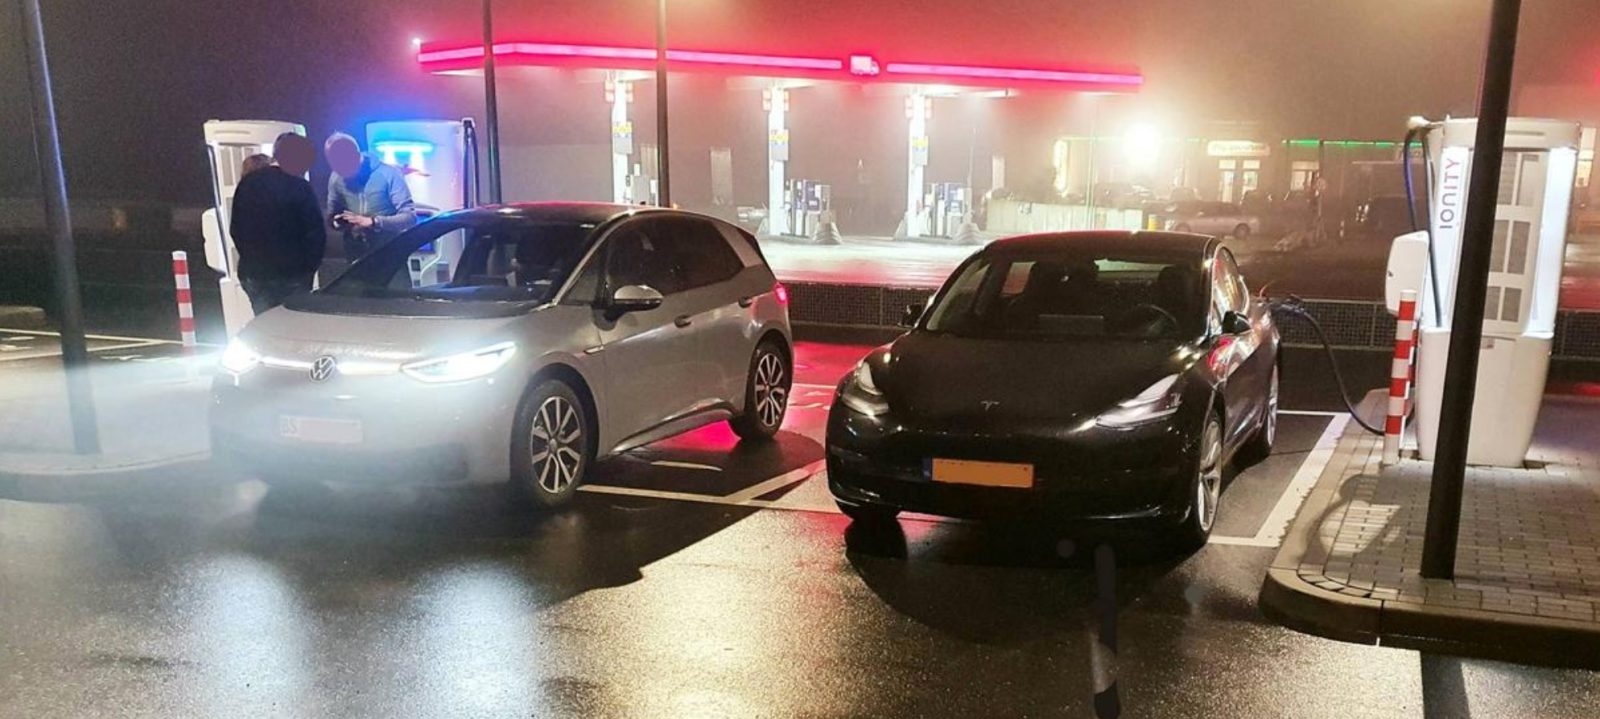 Tesla Model 3 and VW ID.3 side-by-side shows very similar size